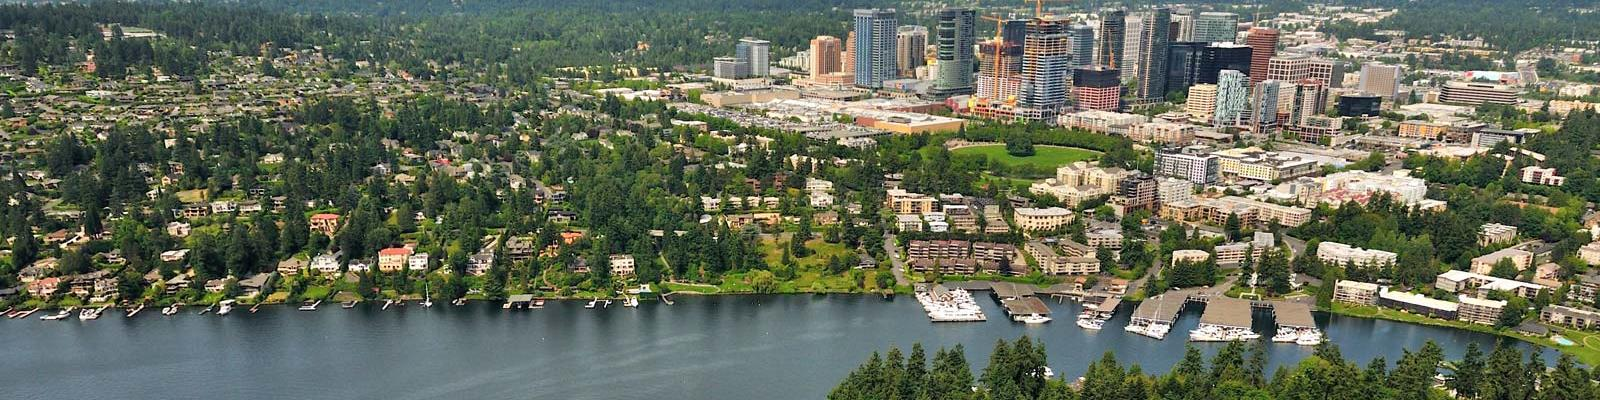 bellevue header